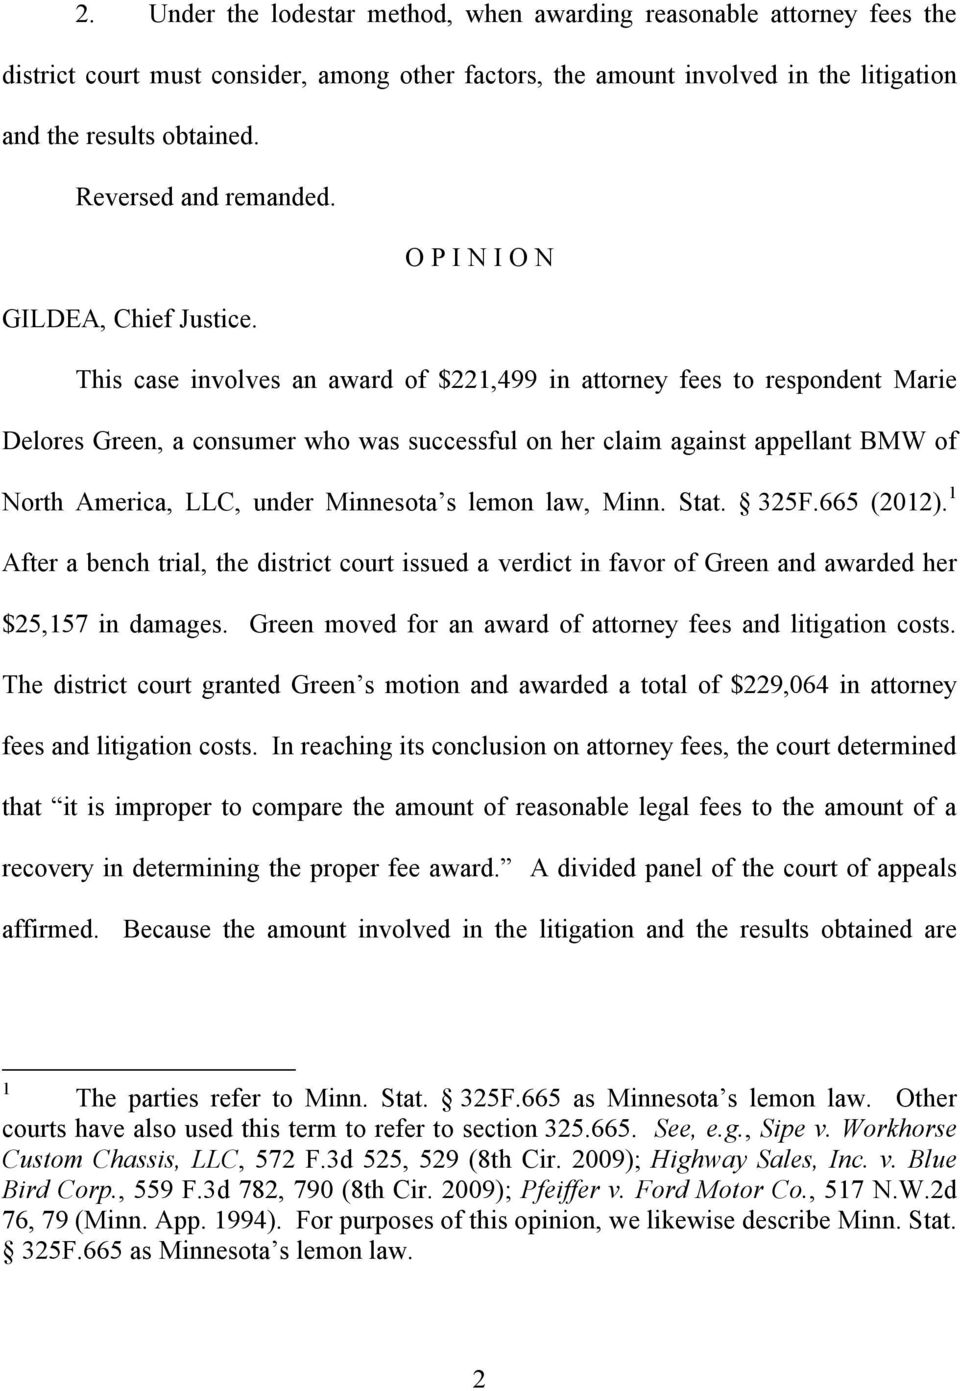 This case involves an award of $221,499 in attorney fees to respondent Marie Delores Green, a consumer who was successful on her claim against appellant BMW of North America, LLC, under Minnesota s